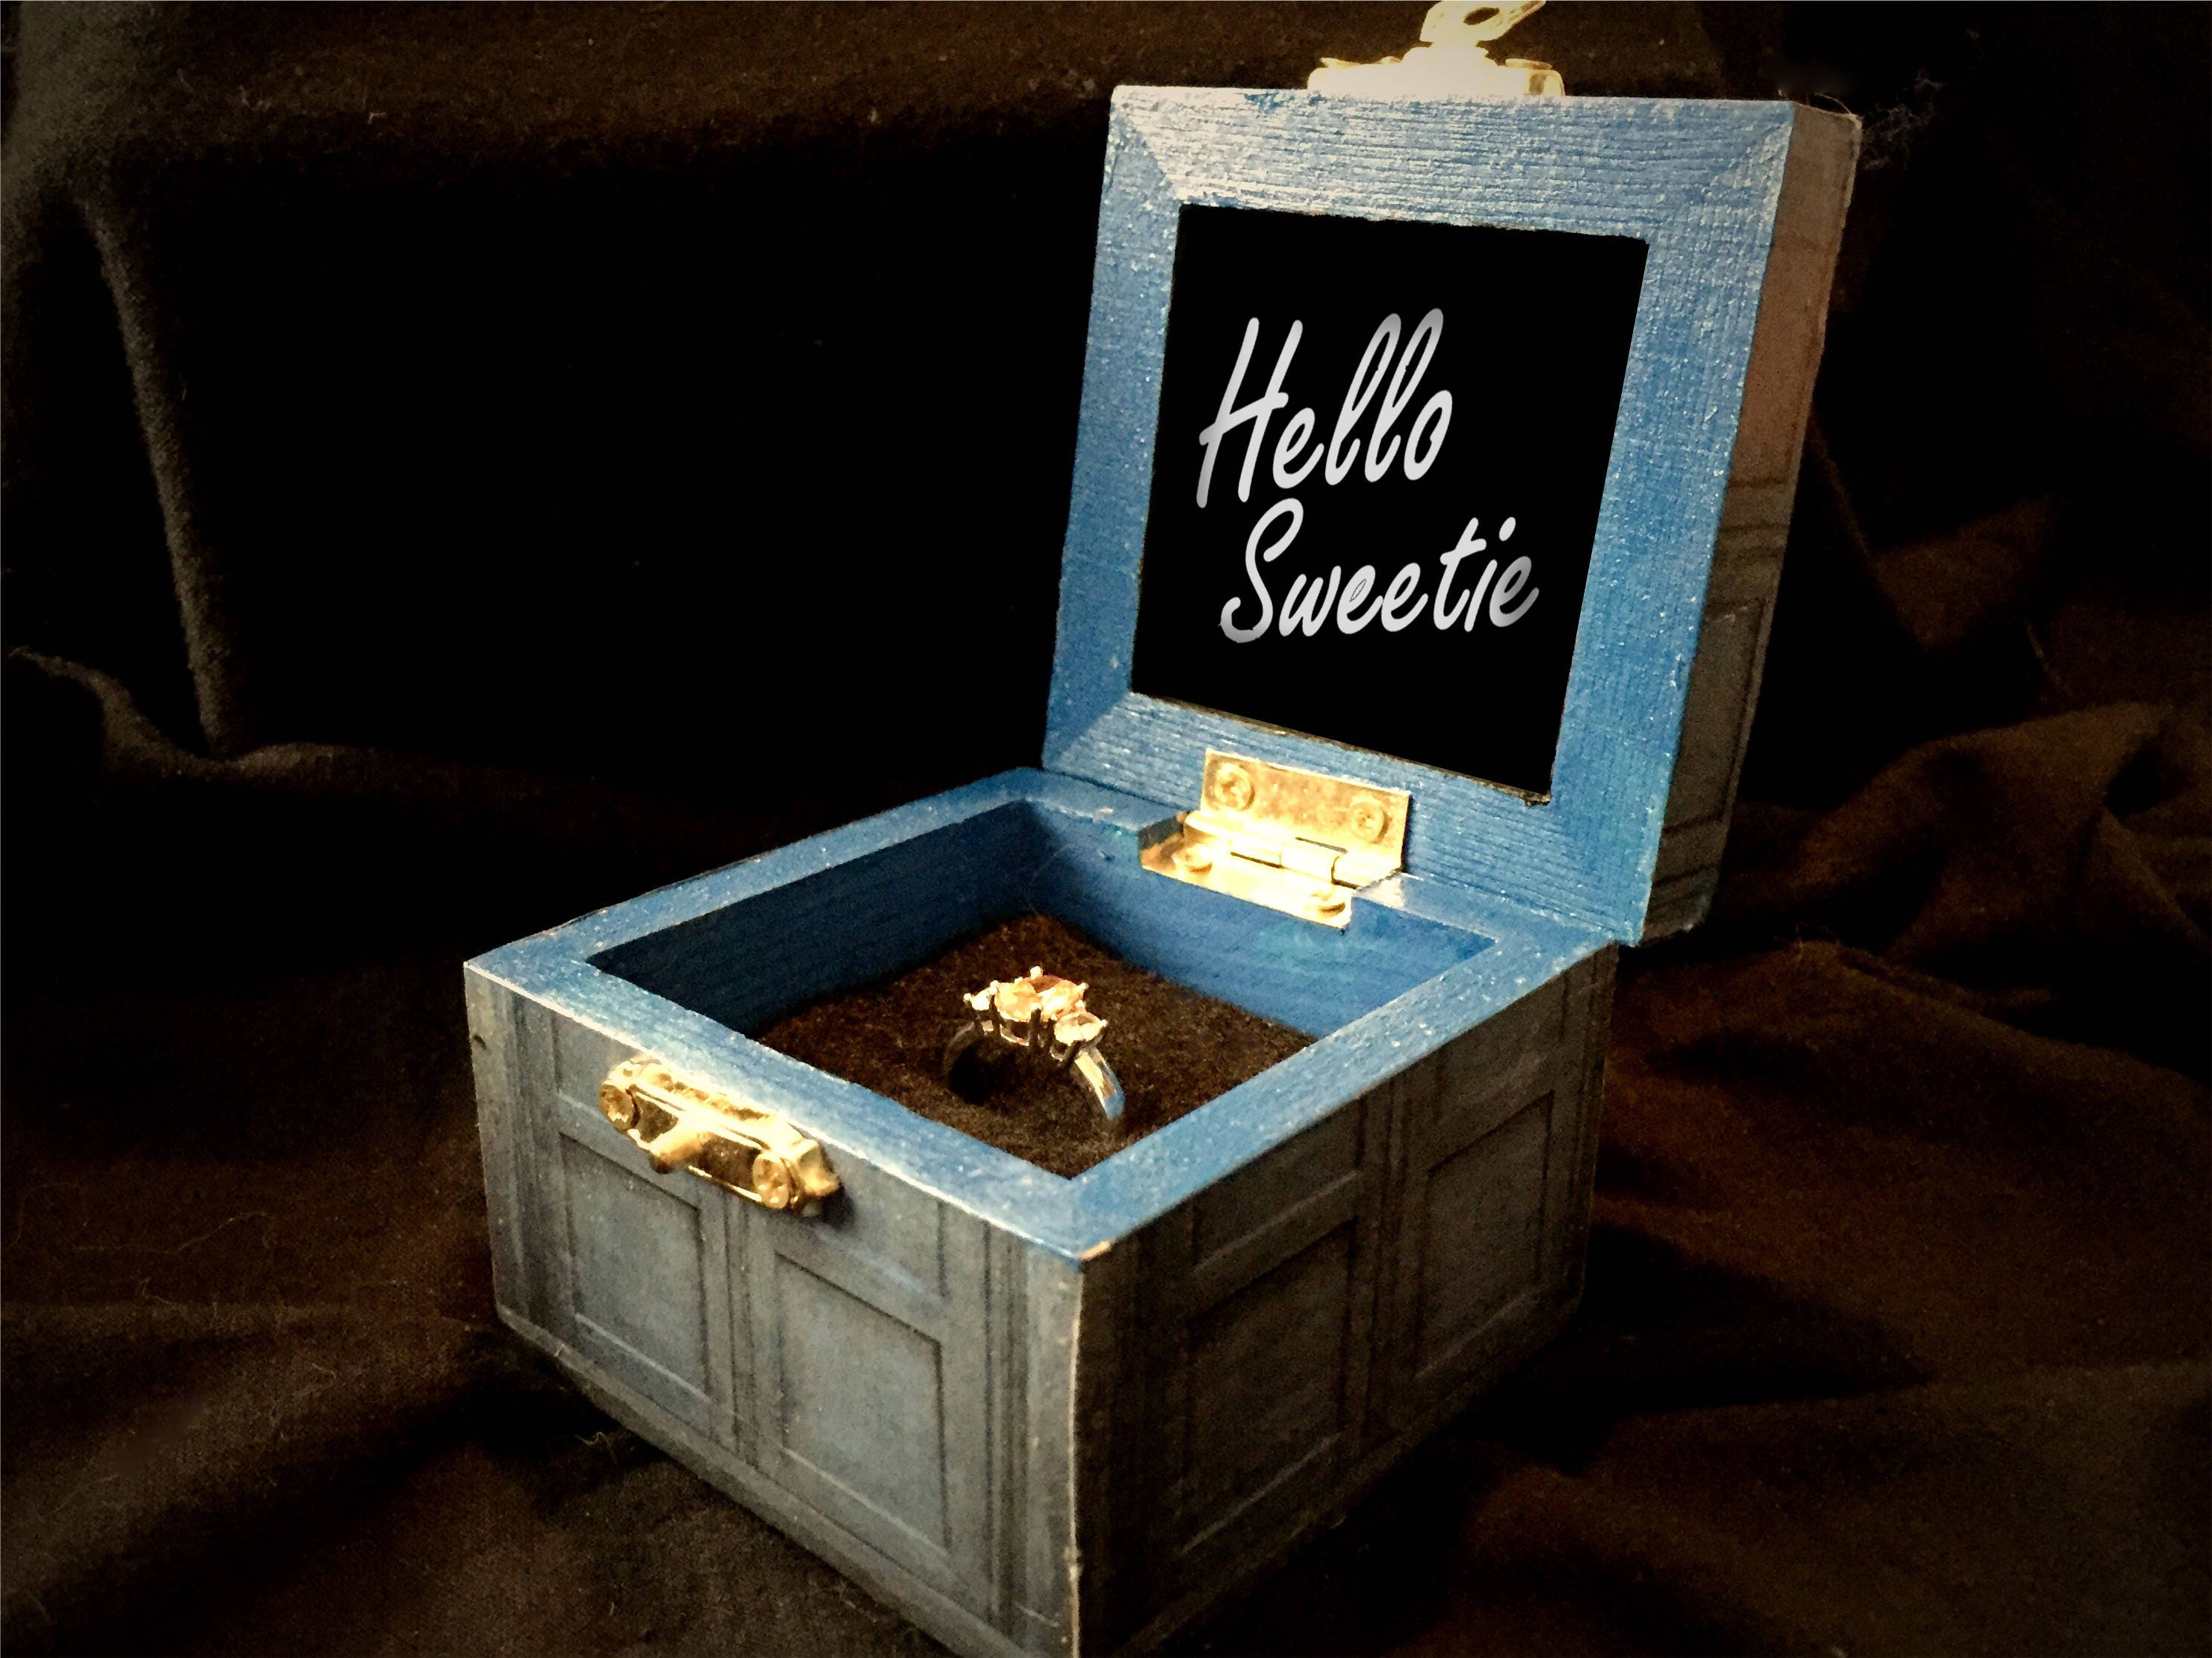 Tardis Doctor Who TIme Lord Inspired Proposal Engagement Ring Box